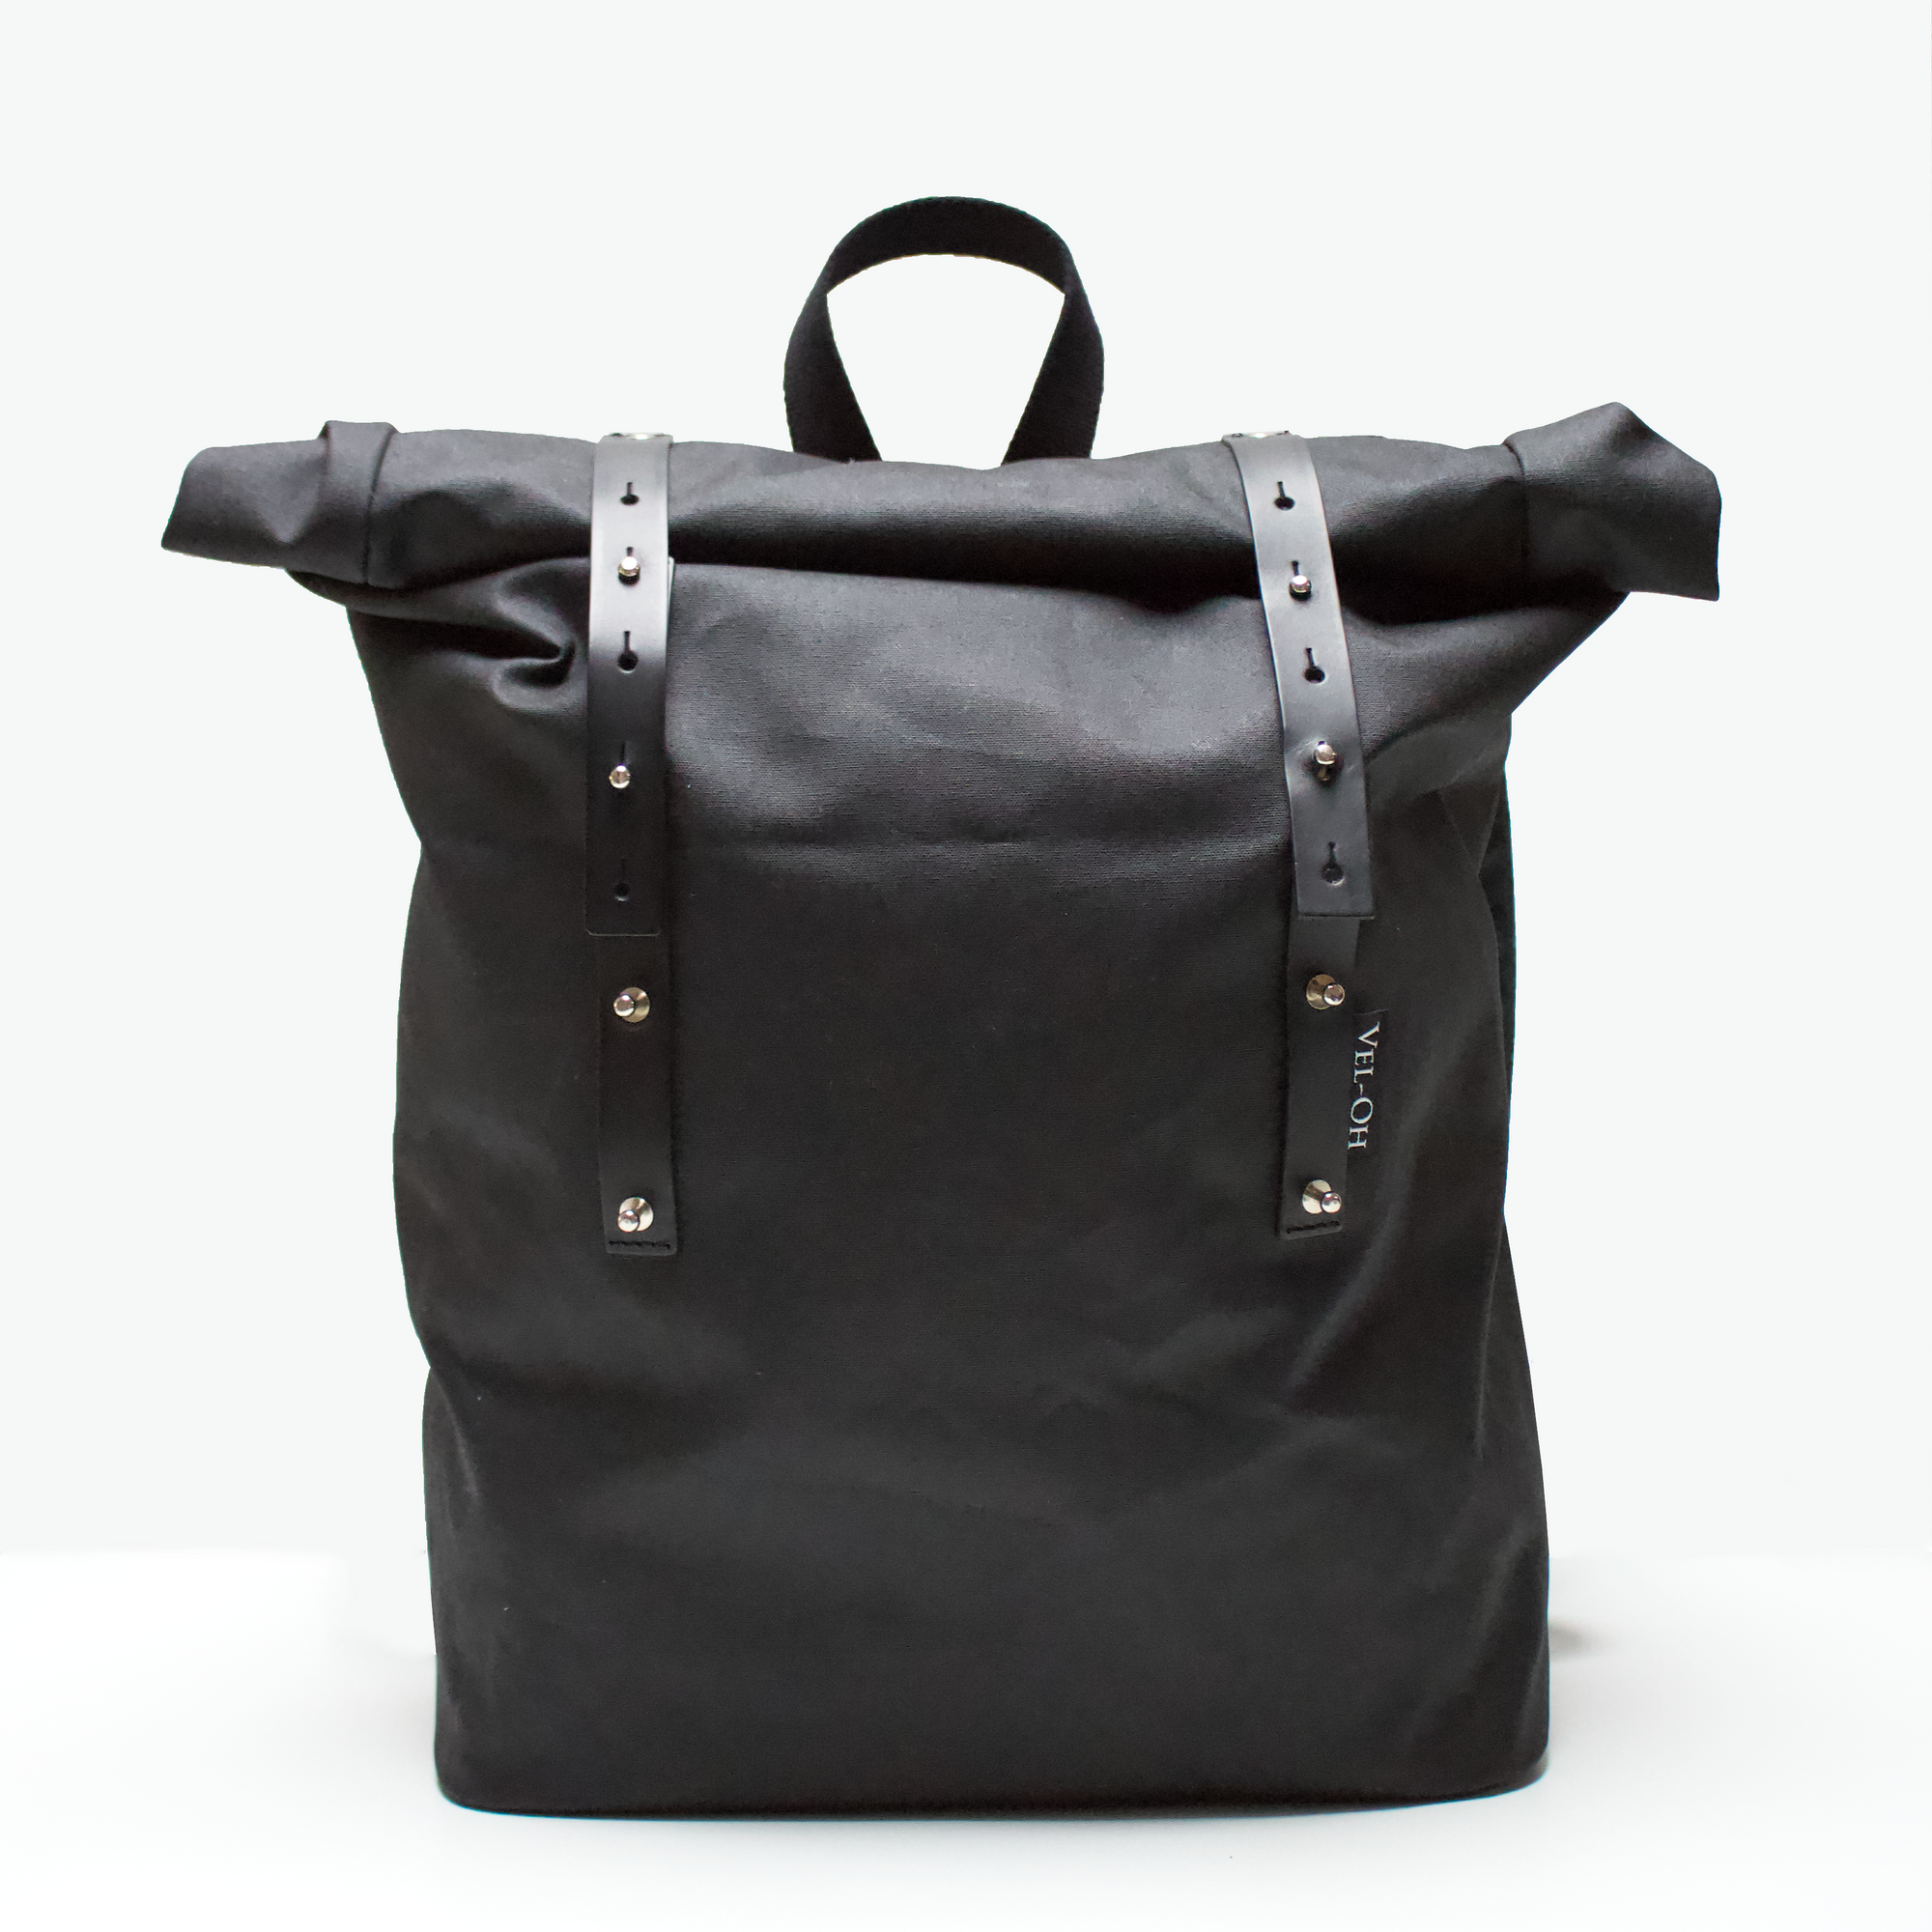 OopsSeph Bag - Black | Backpack